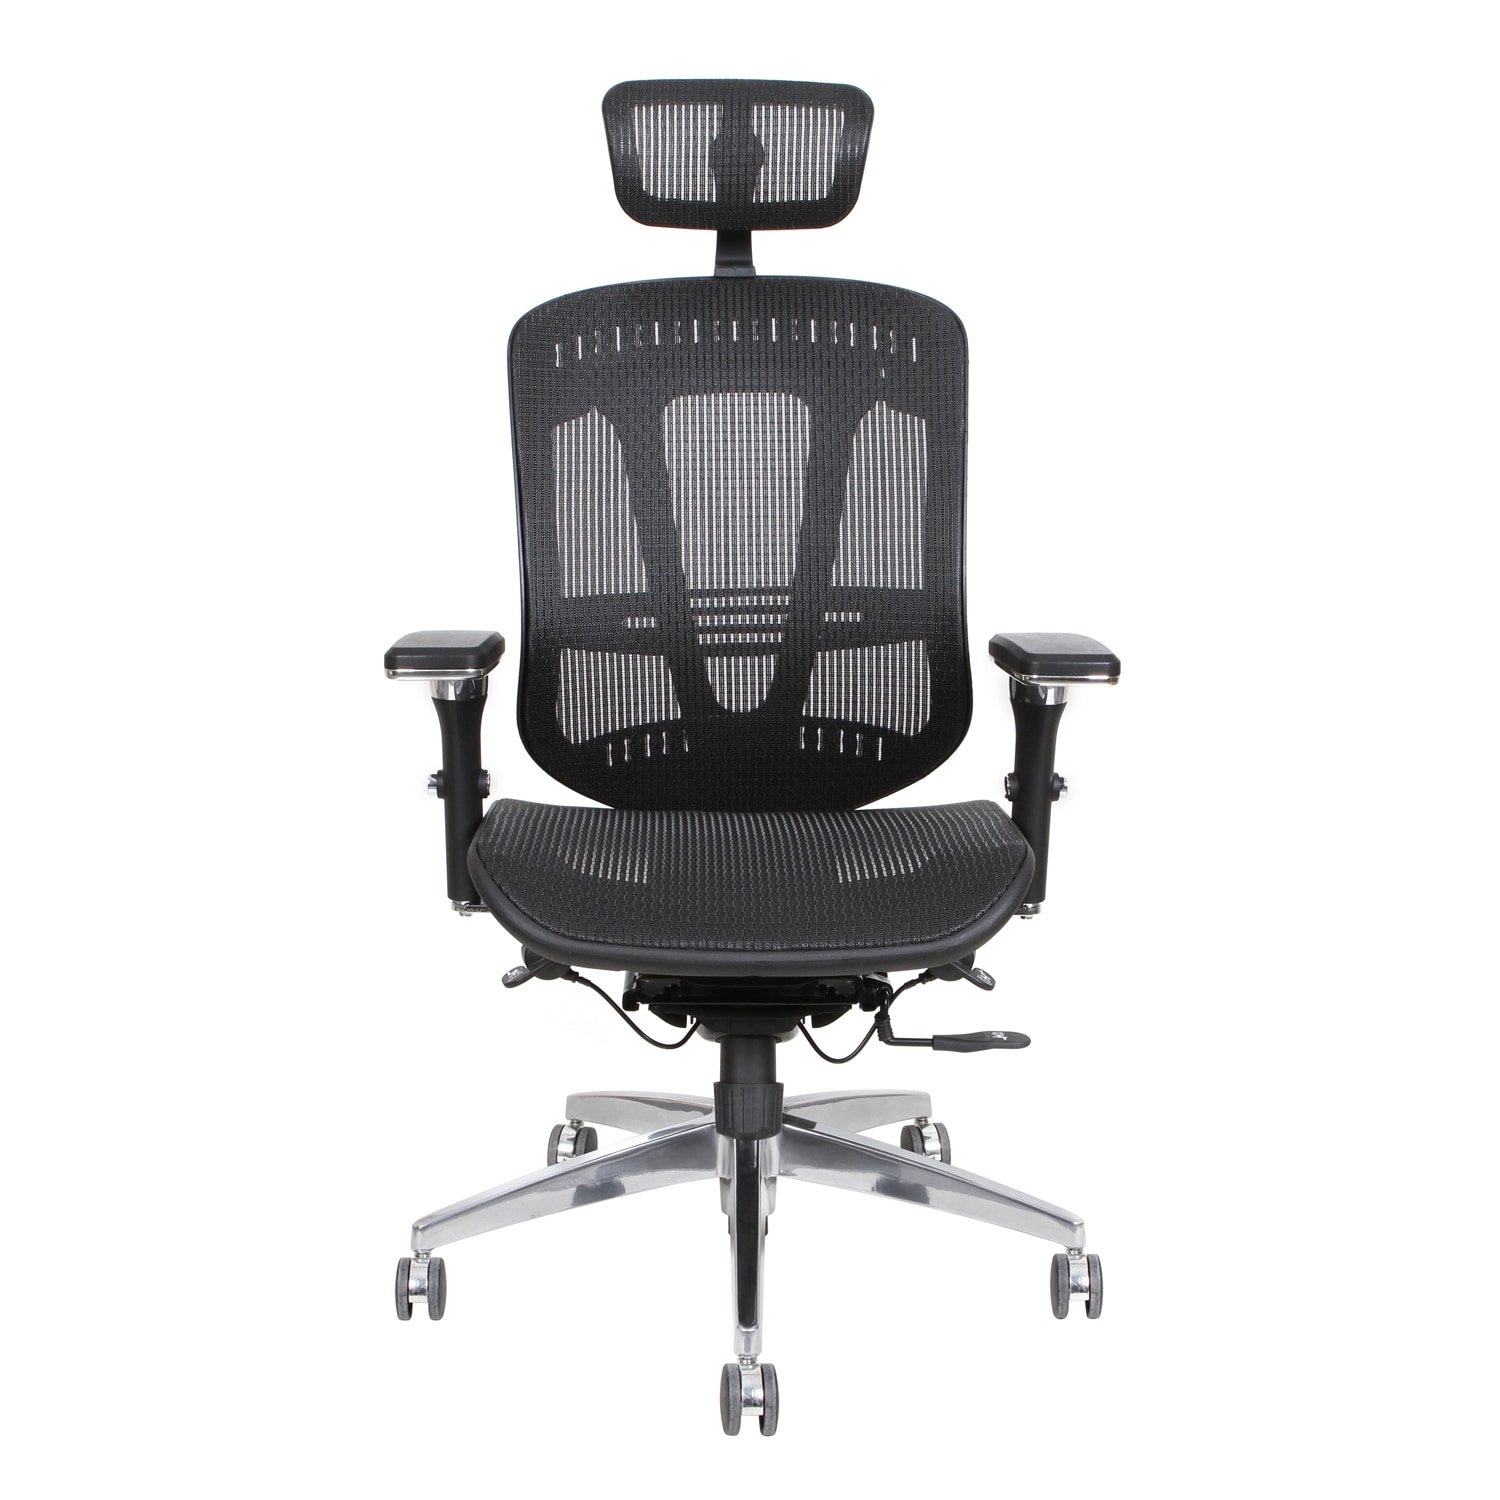 plastic desk chair. Amazon.com: Thornton\u0027s Office Supplies ErgoExec Black Mesh Metal/Plastic Rolling Swivel Height-Adjustable Executive Computer Desk Chair With Plastic